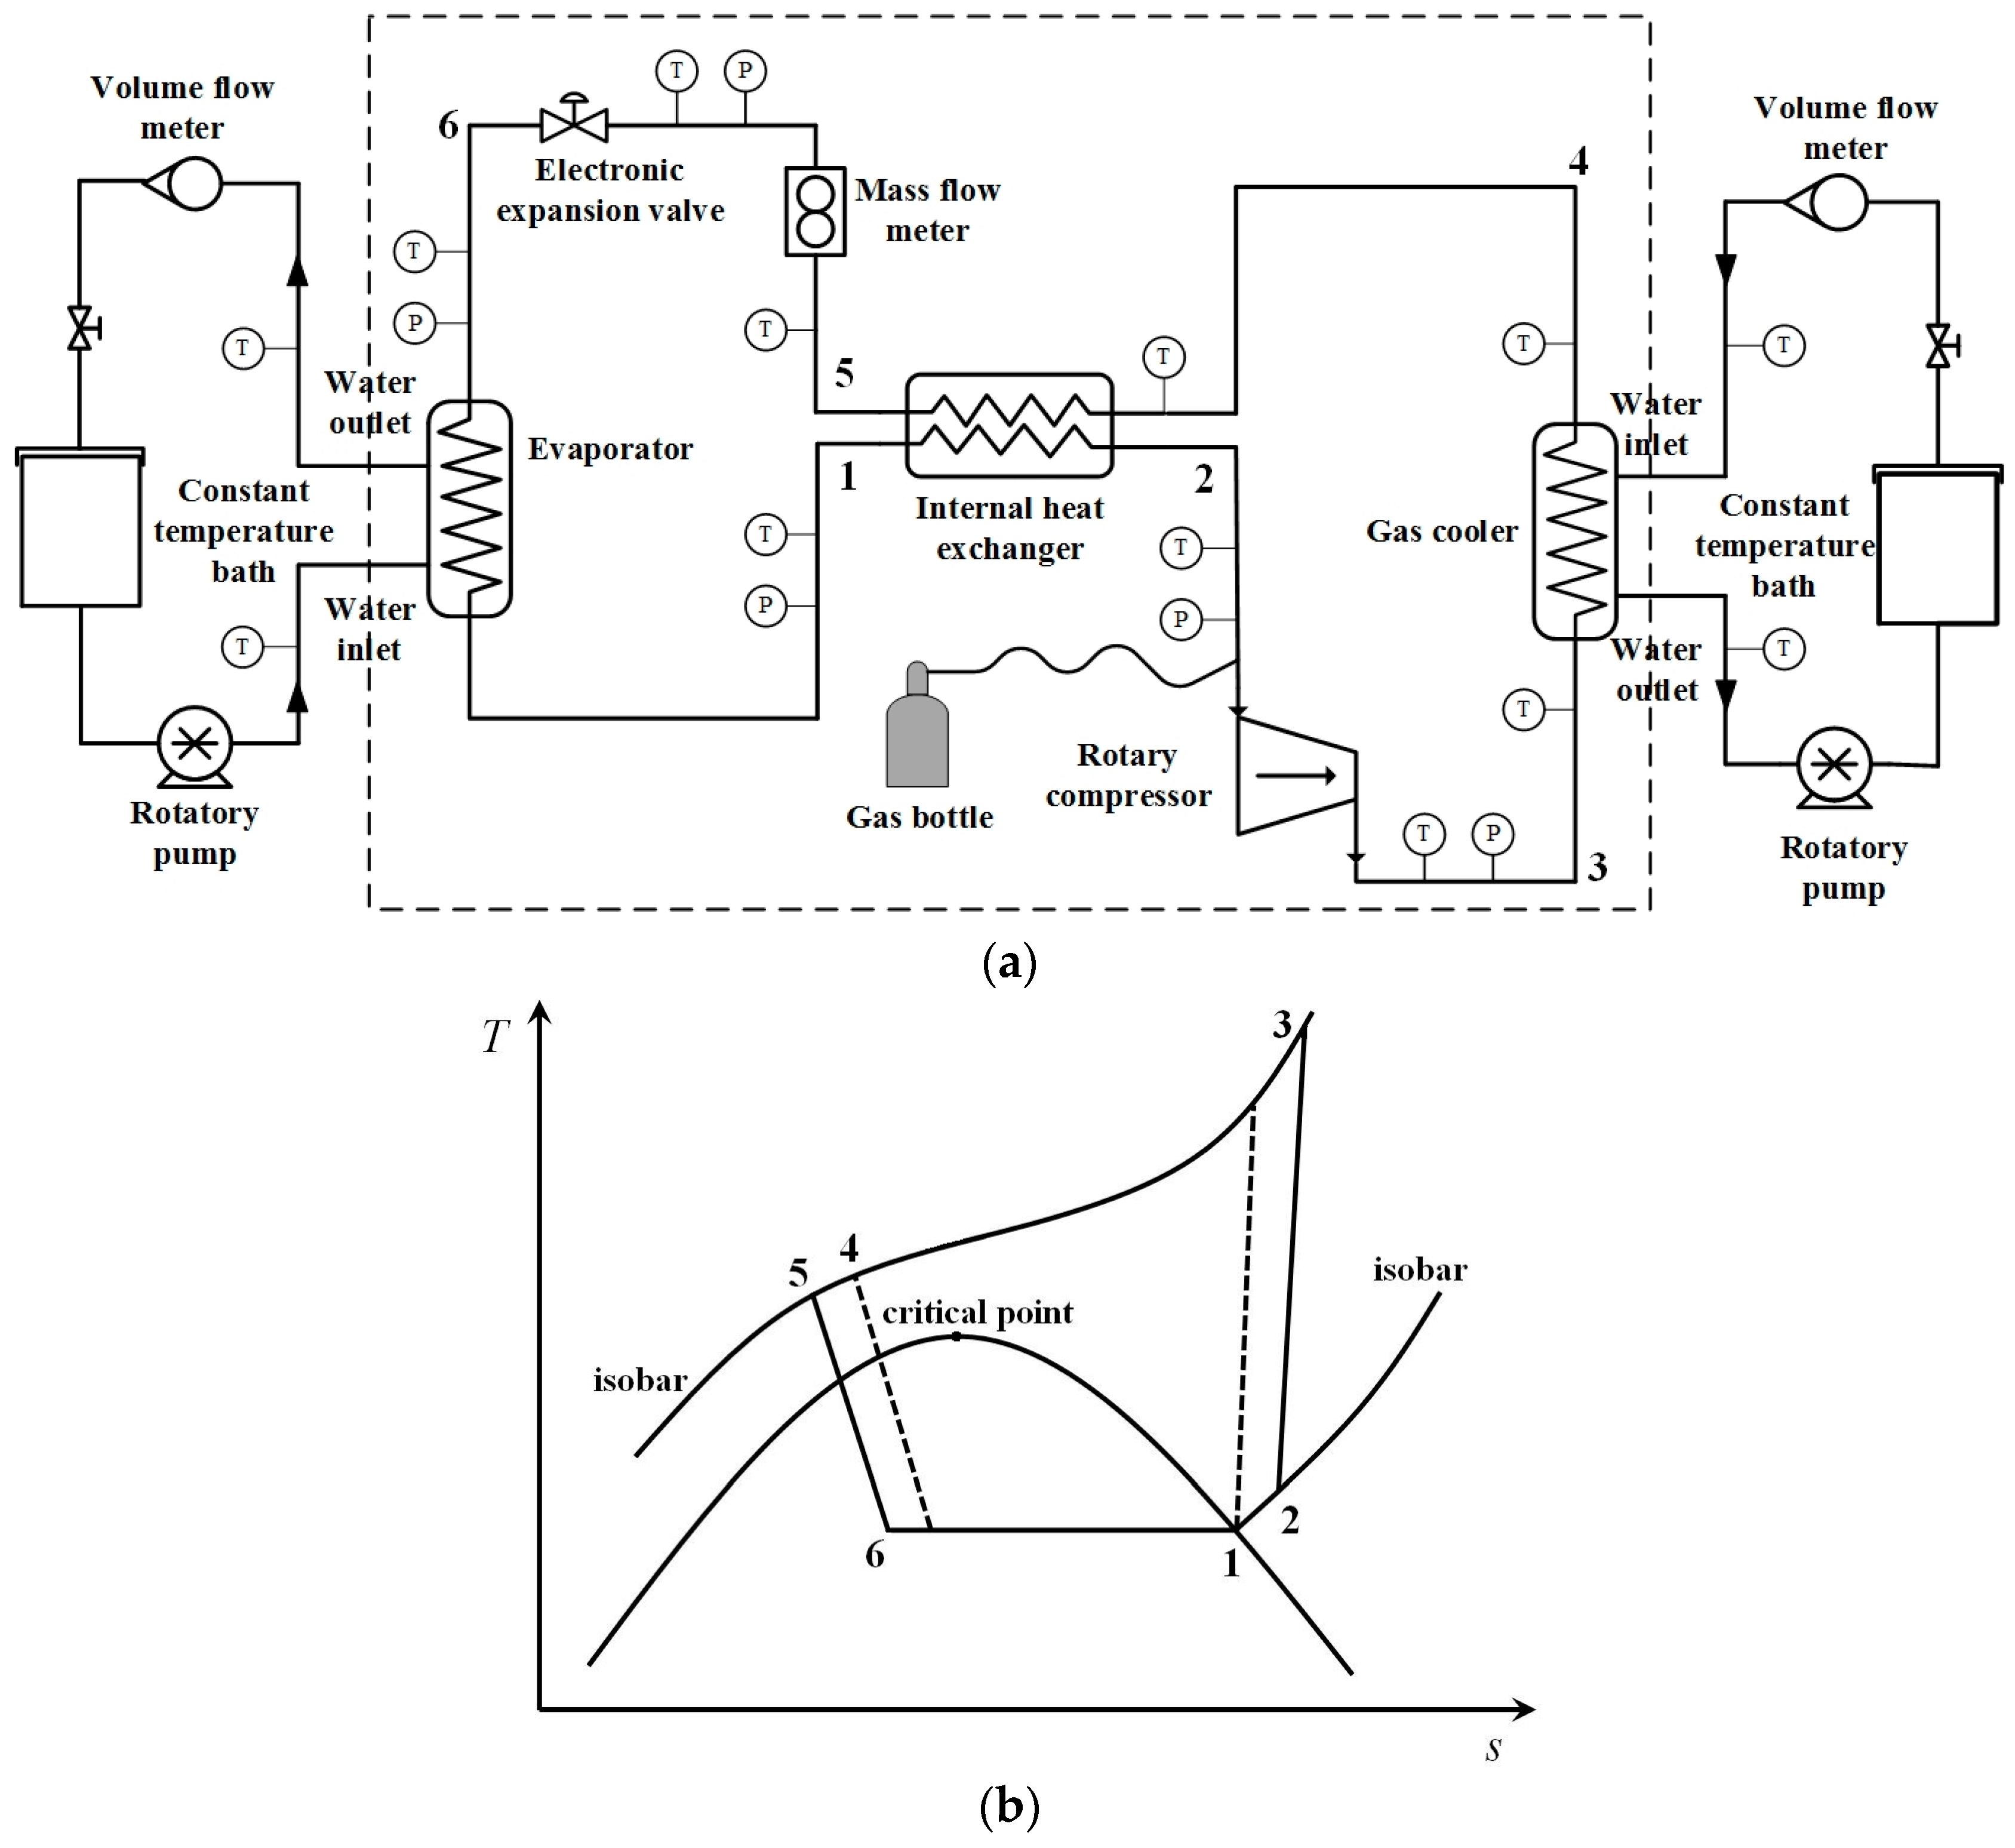 Energies Free Full Text Influence Of Refrigerant Charge Amount Expansion Valve Diagram 10 01521 G001